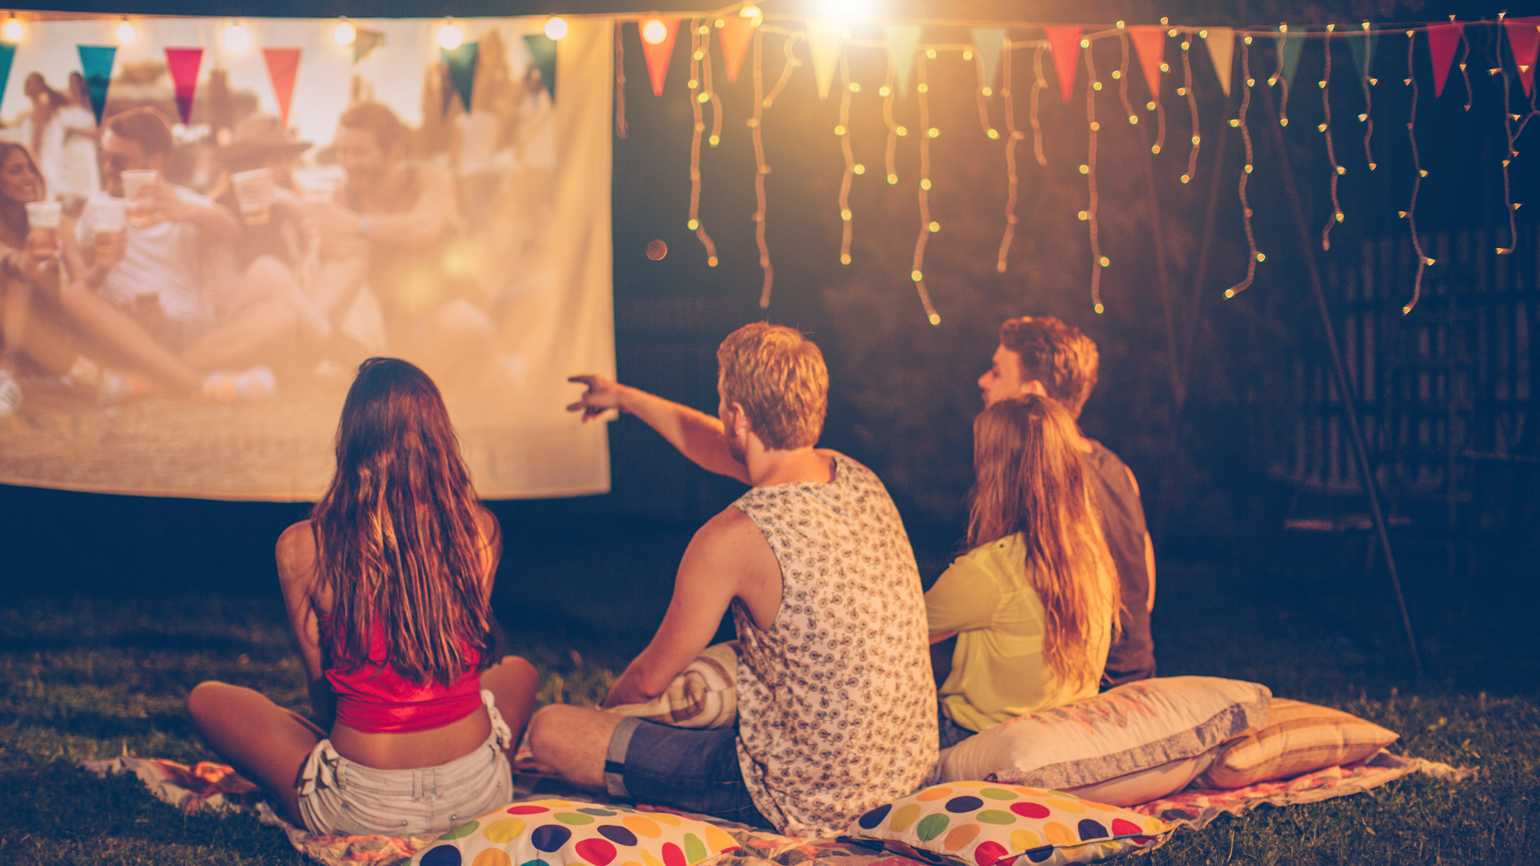 A group of friends watching a movie outdoors during the summer.